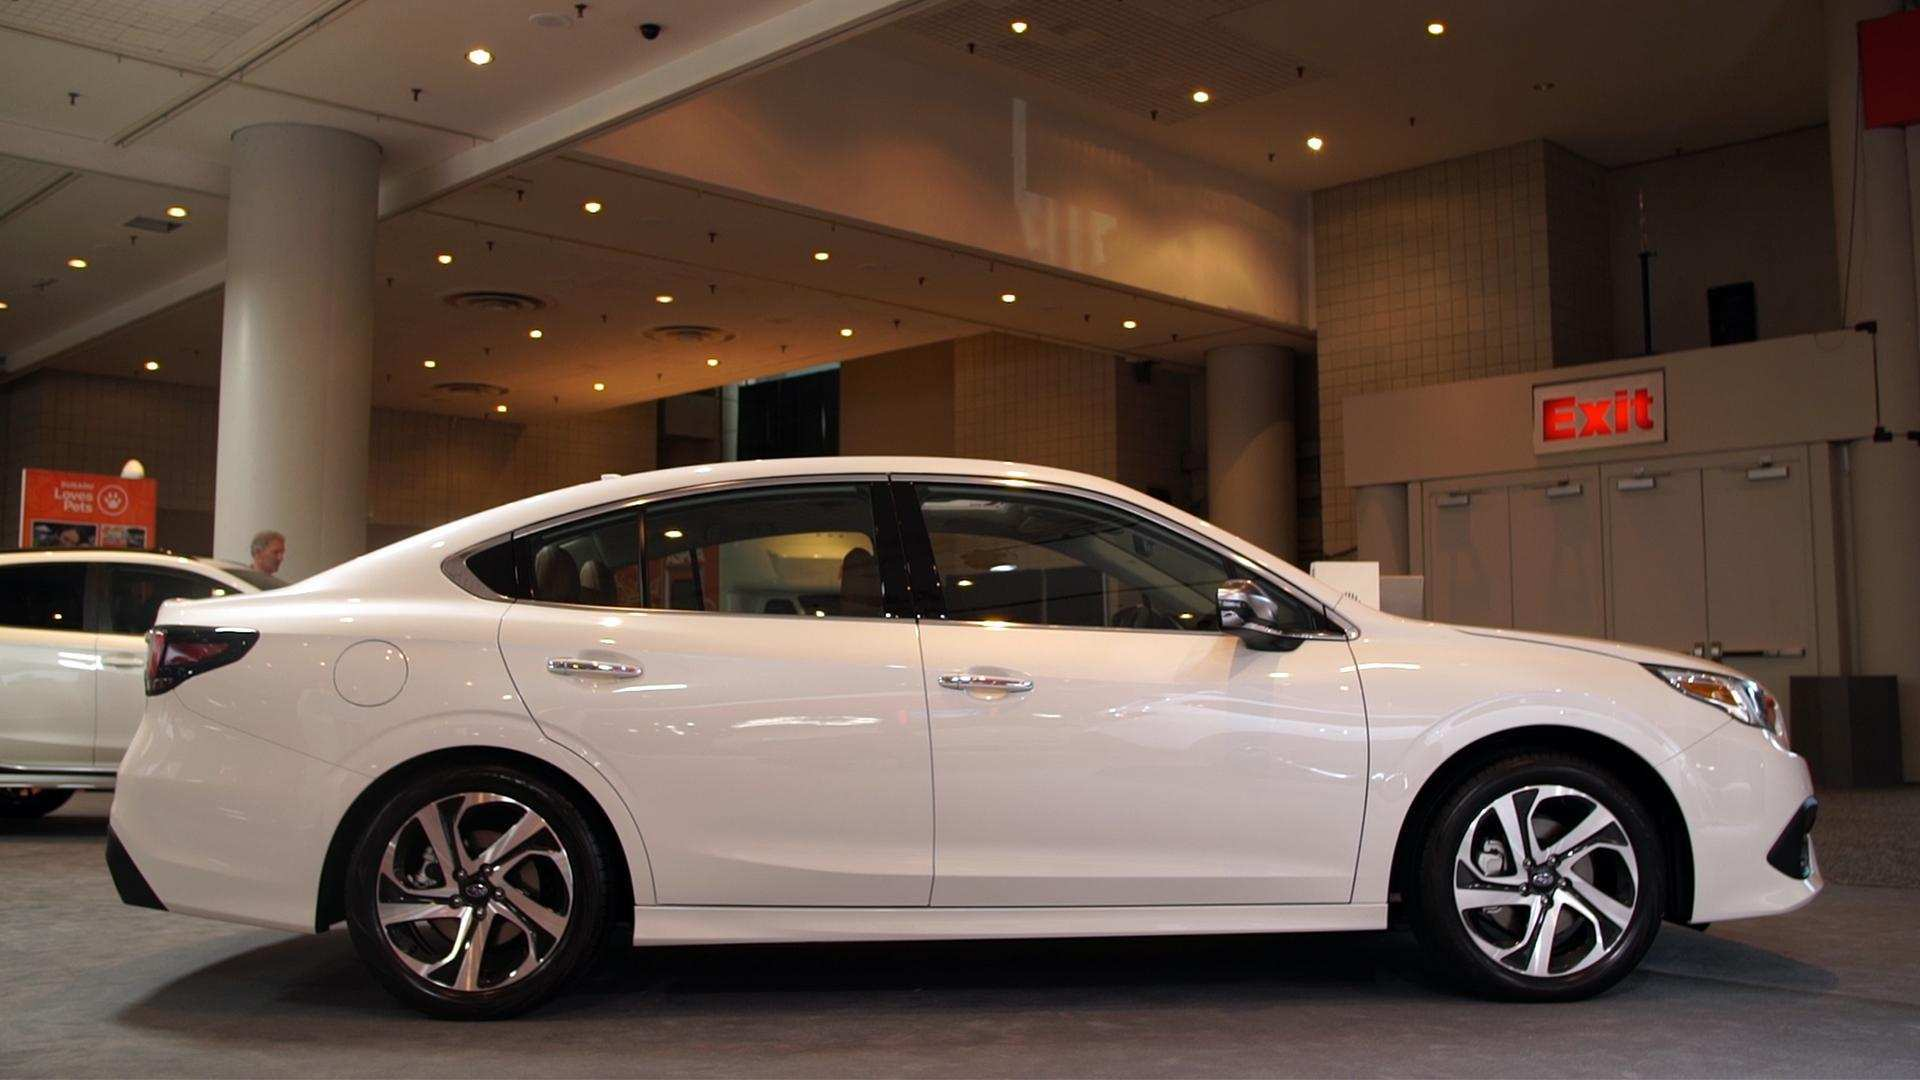 56 All New When Will 2020 Subaru Legacy Be Available Exterior And Interior